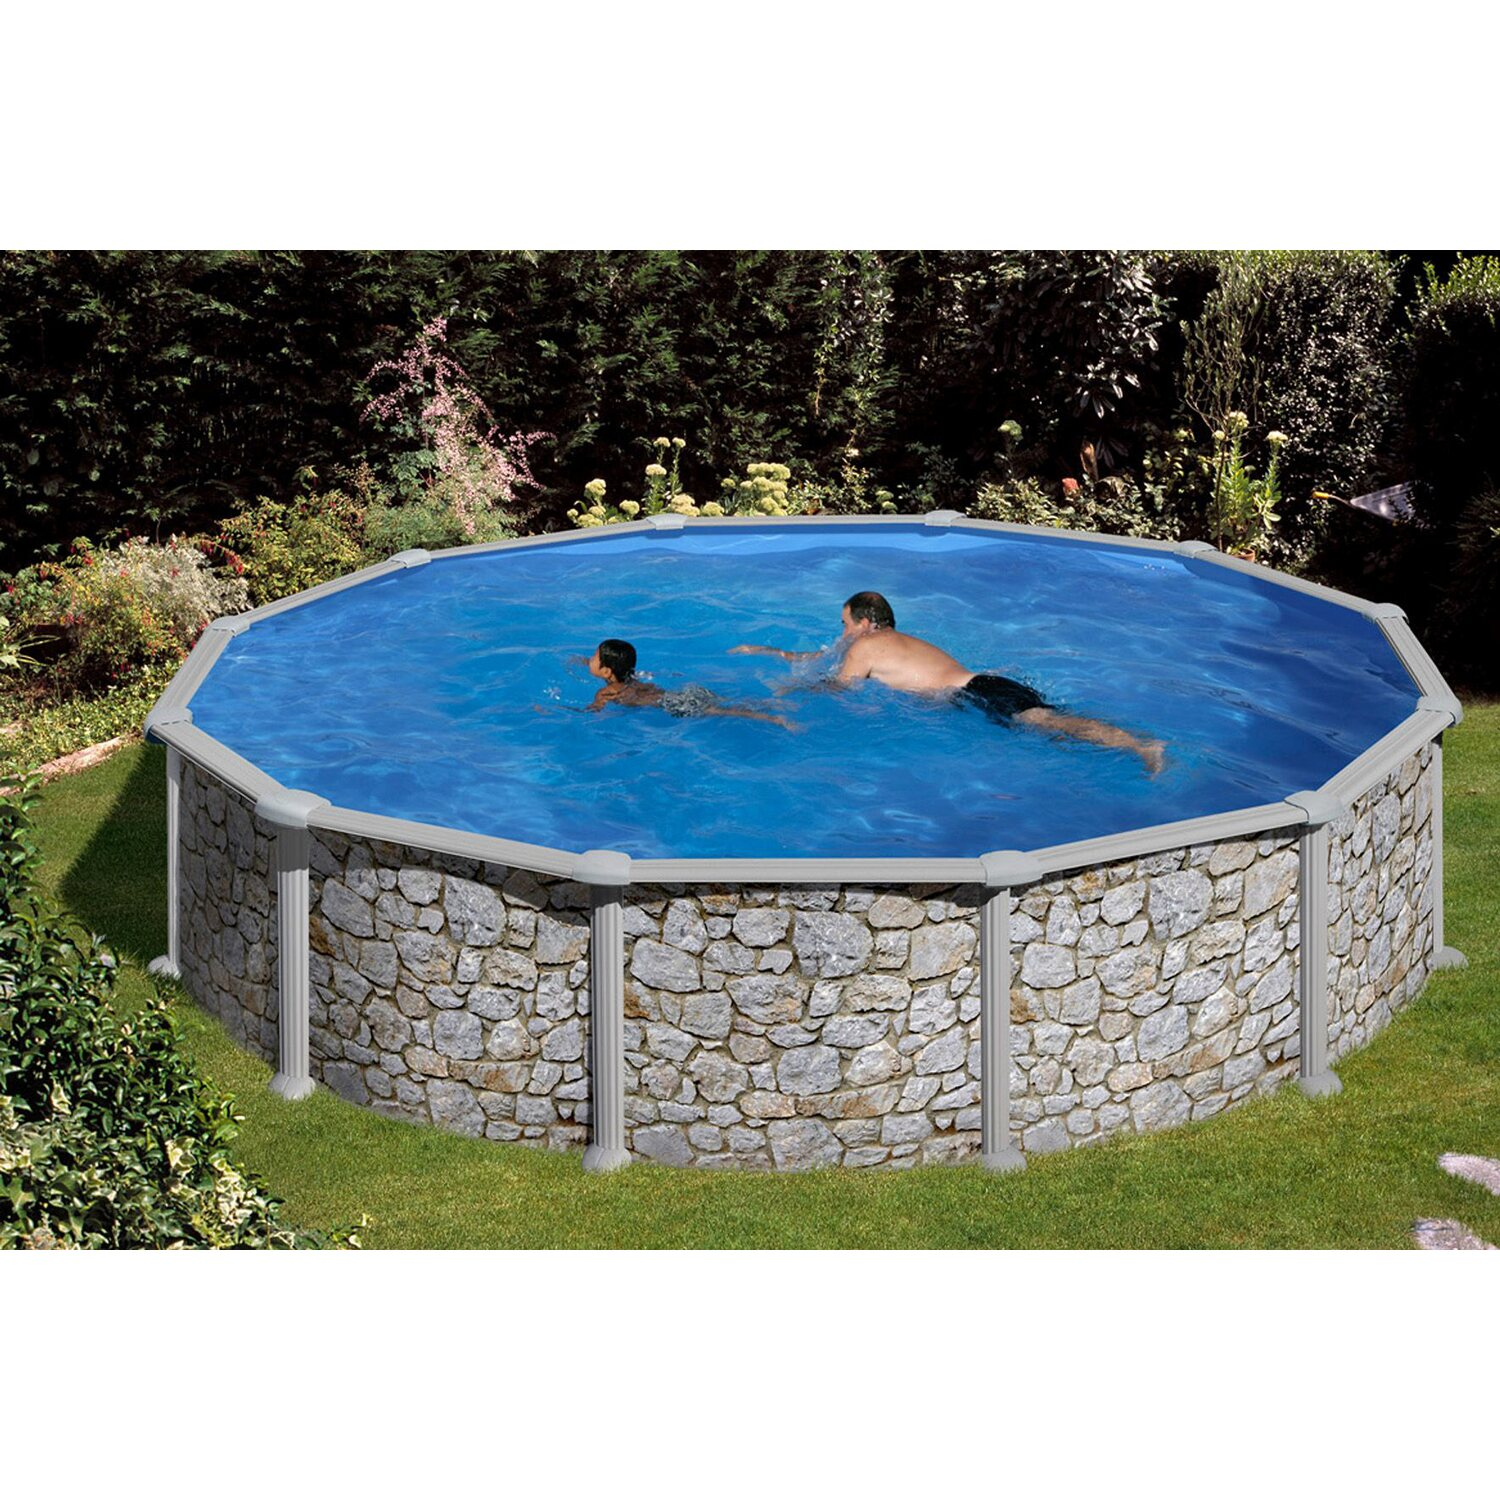 Summer fun stahlwand pool set verona 350 cm x 120 cm for Pool obi baumarkt